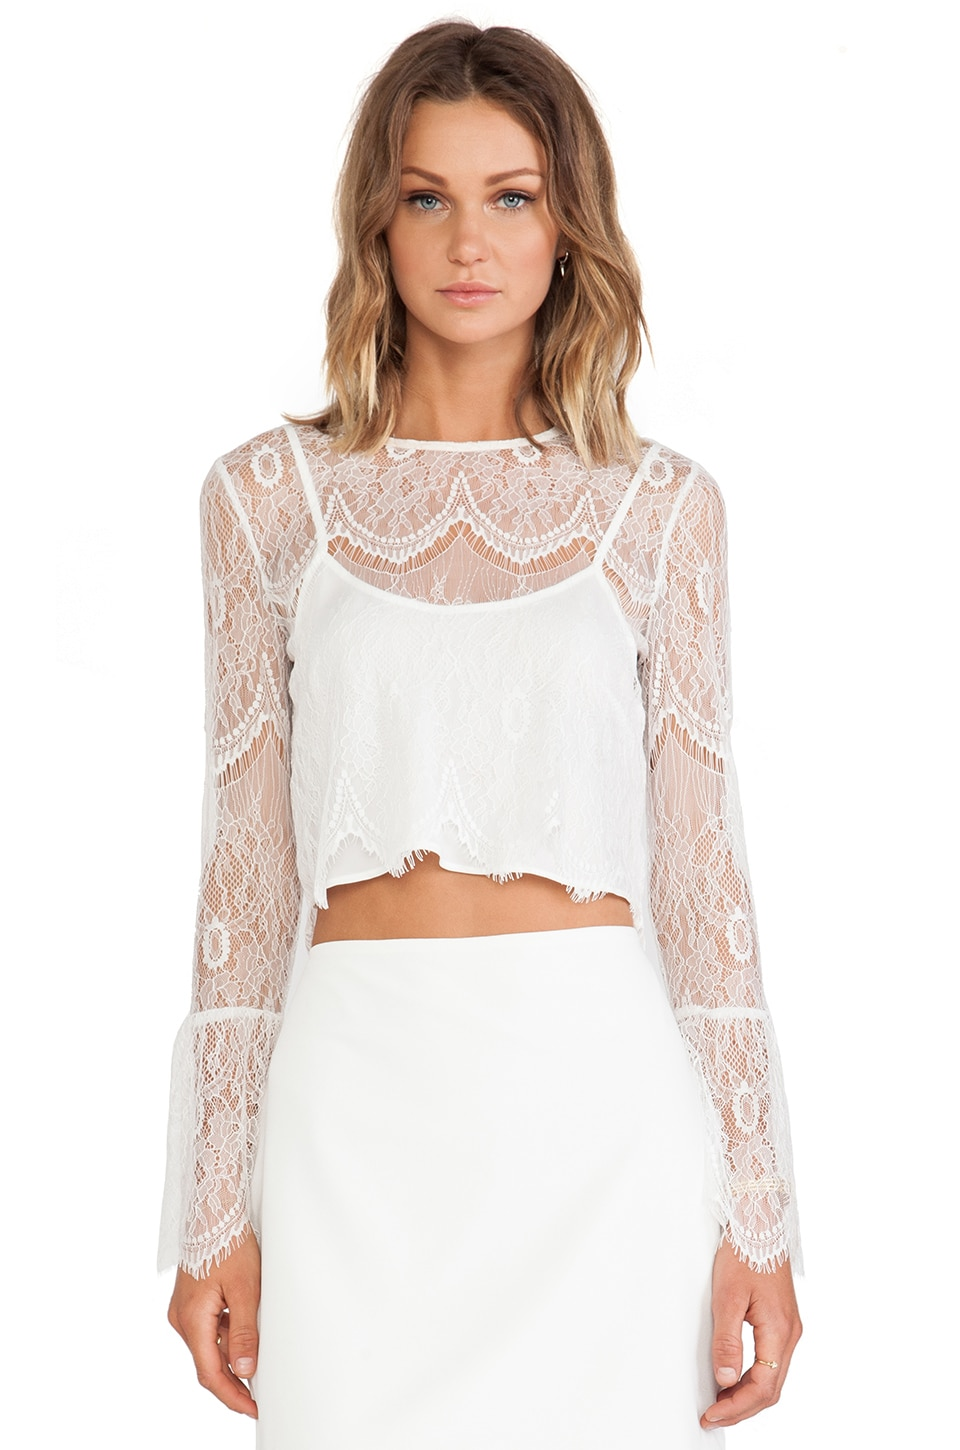 Candela Ariana Top in White